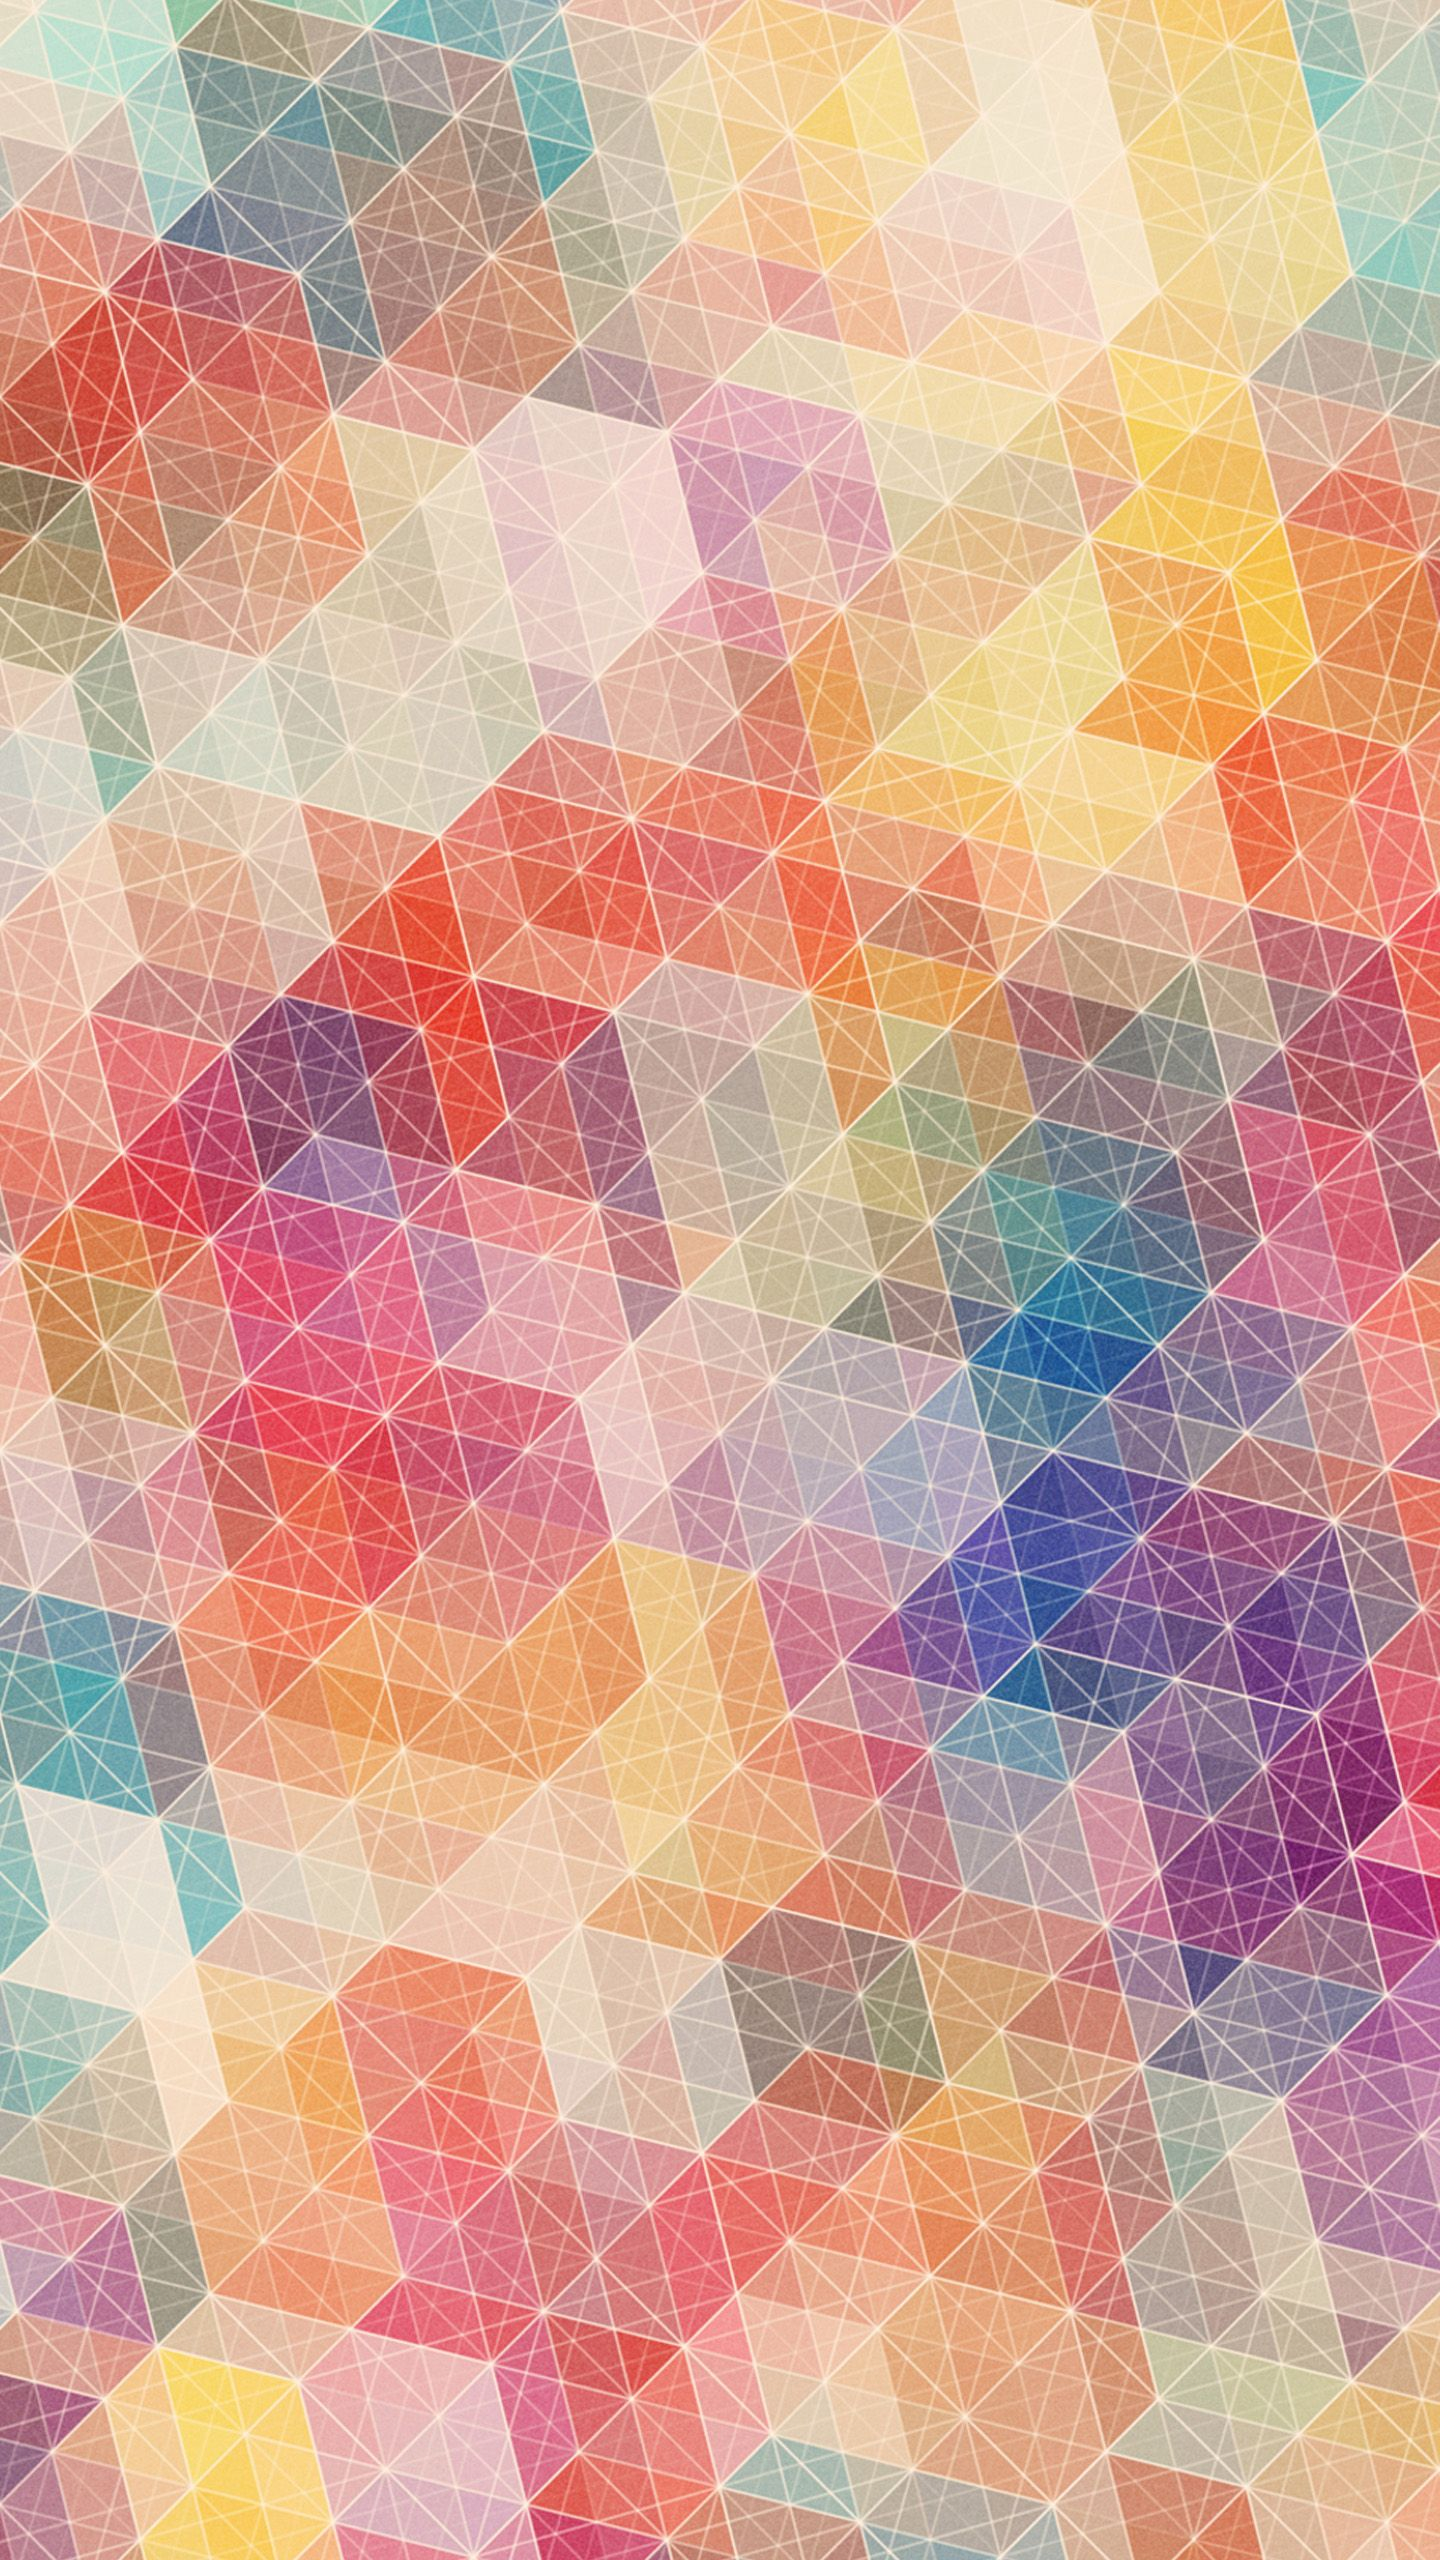 Free Colorful Geometric Wallpaper: Colorful LG G3 Wallpapers 79